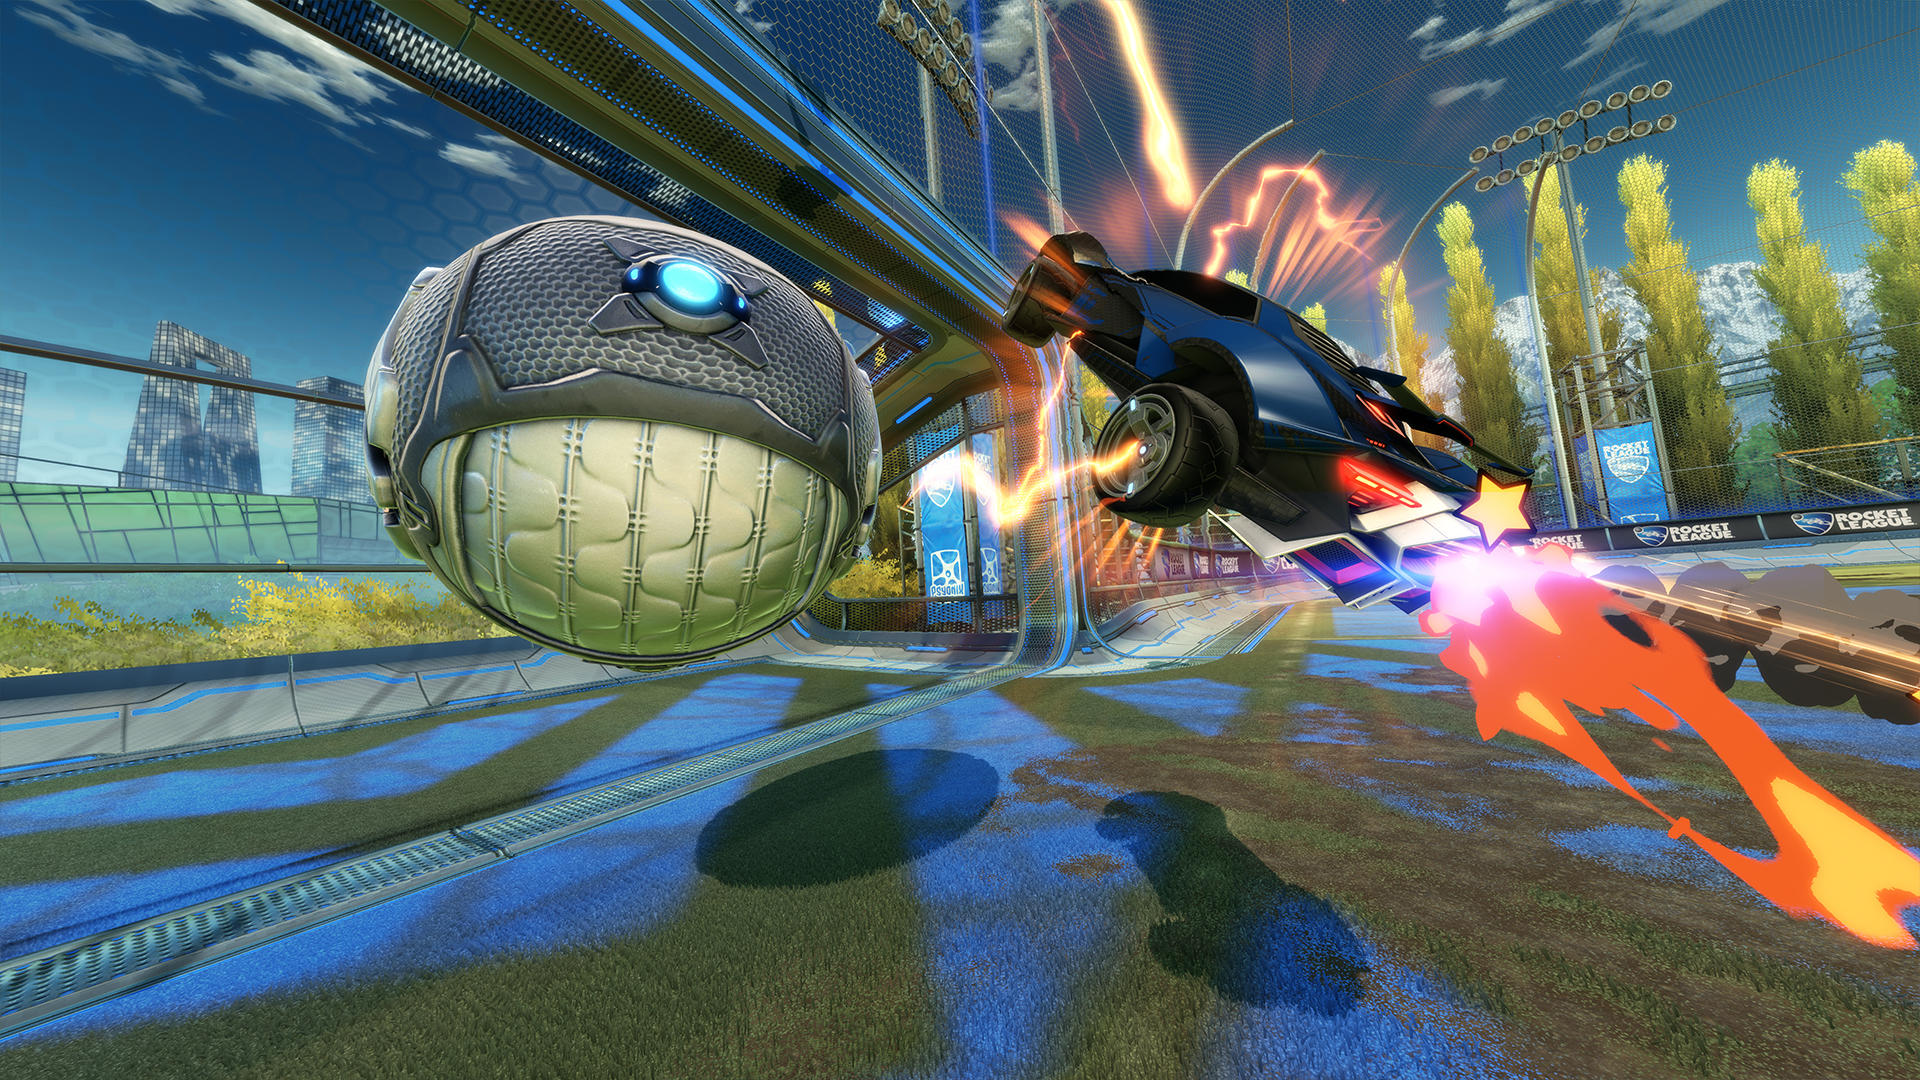 Rocket League won't have loot boxes later this year